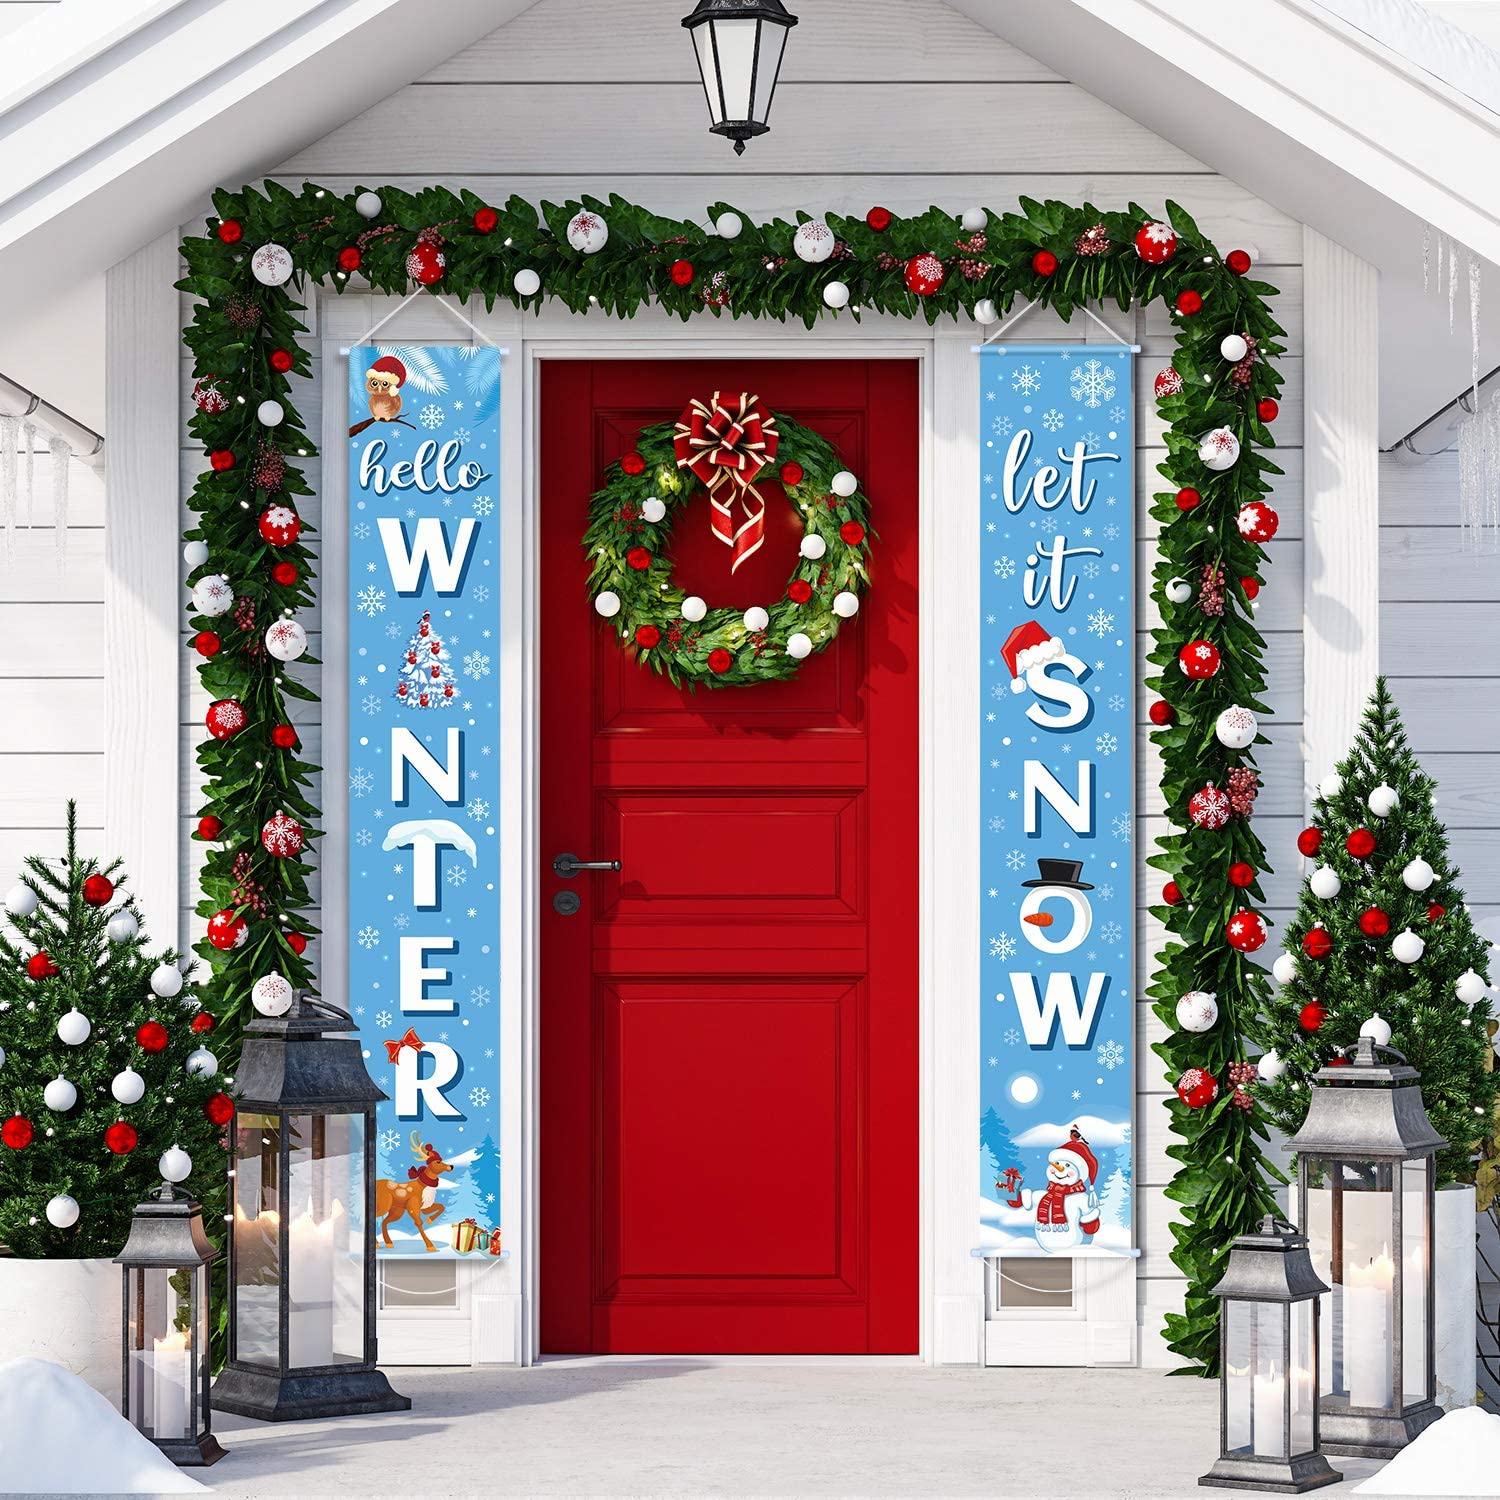 Holiday Snowflake Banner Blue Let it Snow Banner Winter Welcome Porch Hanging Sign Winter Porch Banner for Home Wall Indoor Outdoor Holiday Party Christmas Winter Decor